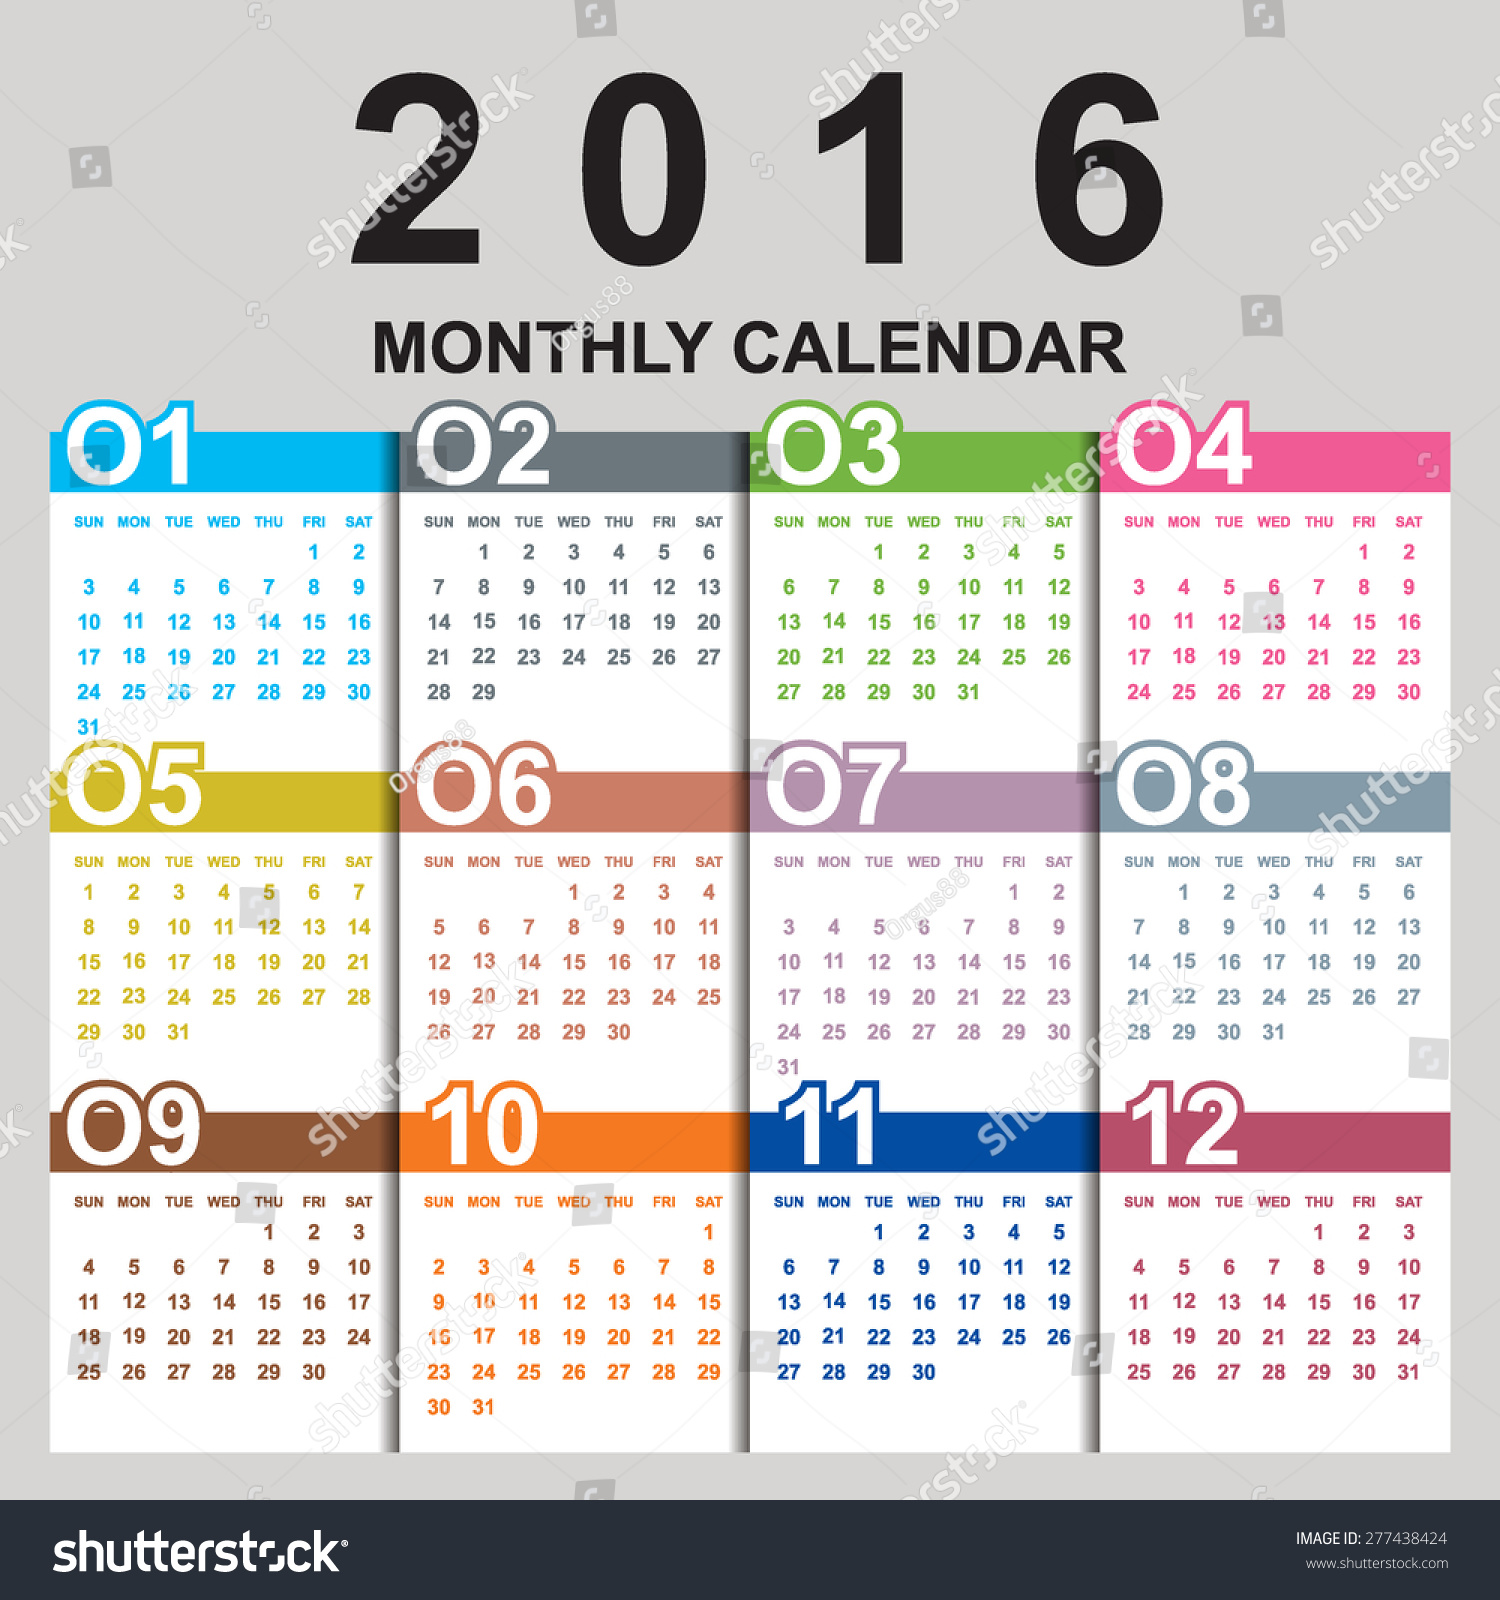 Vertical Calendar Design : Simple calendar design